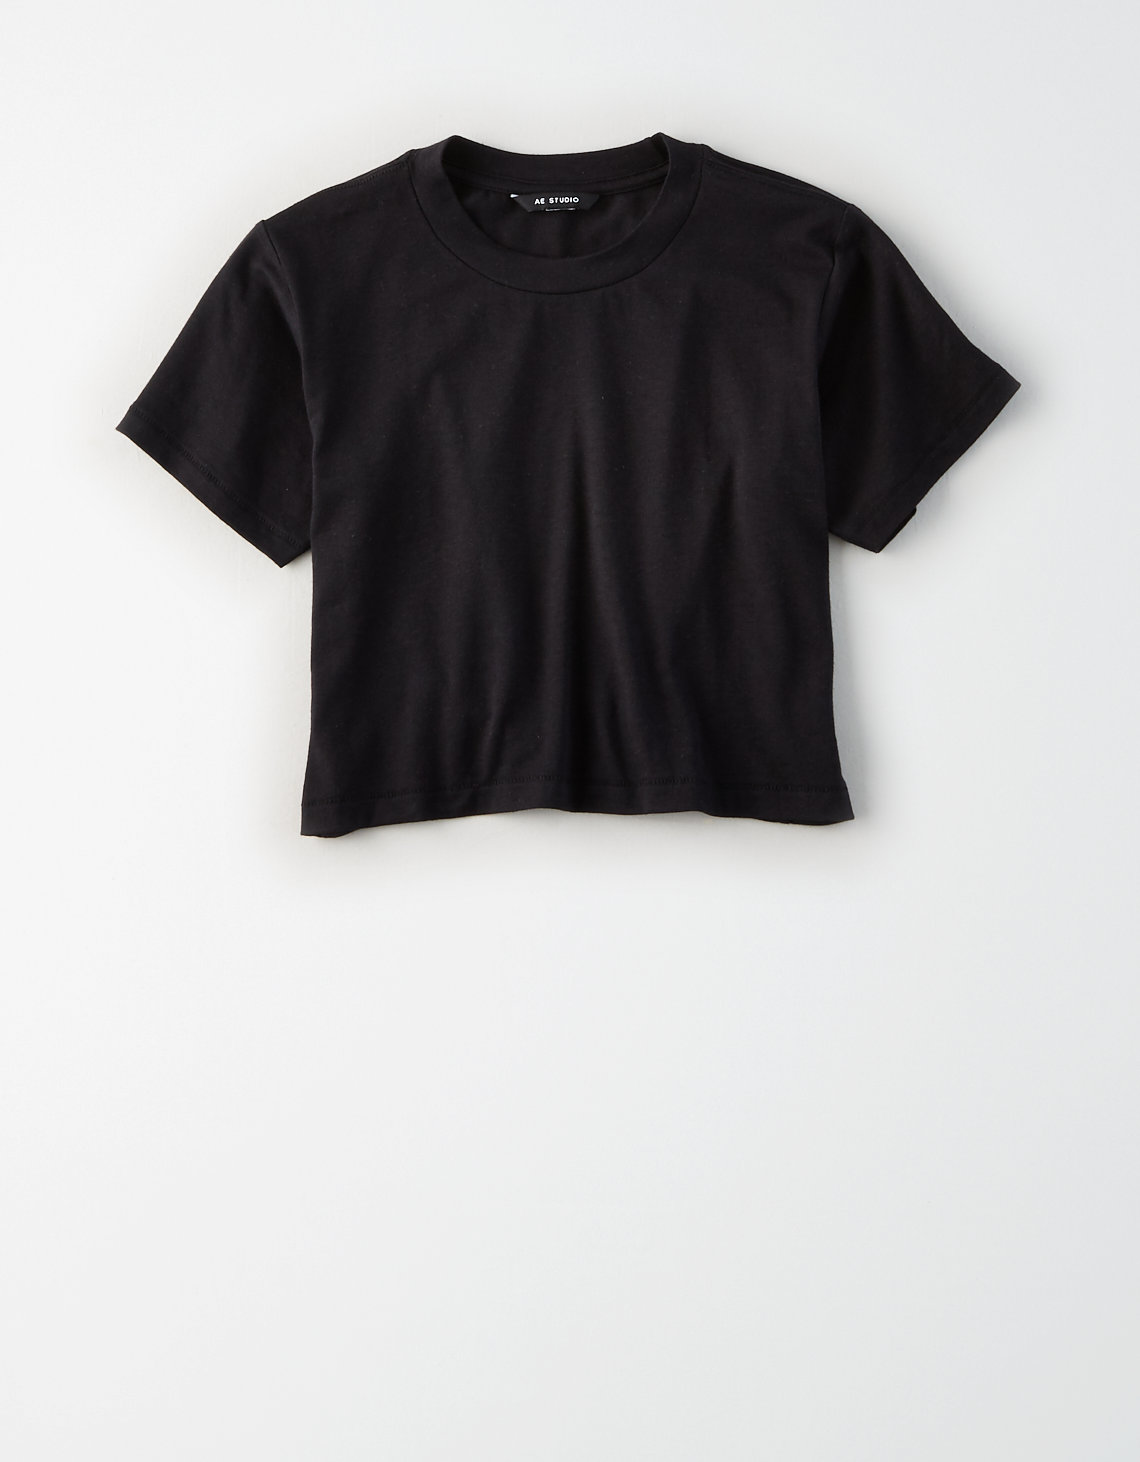 AE Studio Cropped T-Shirt